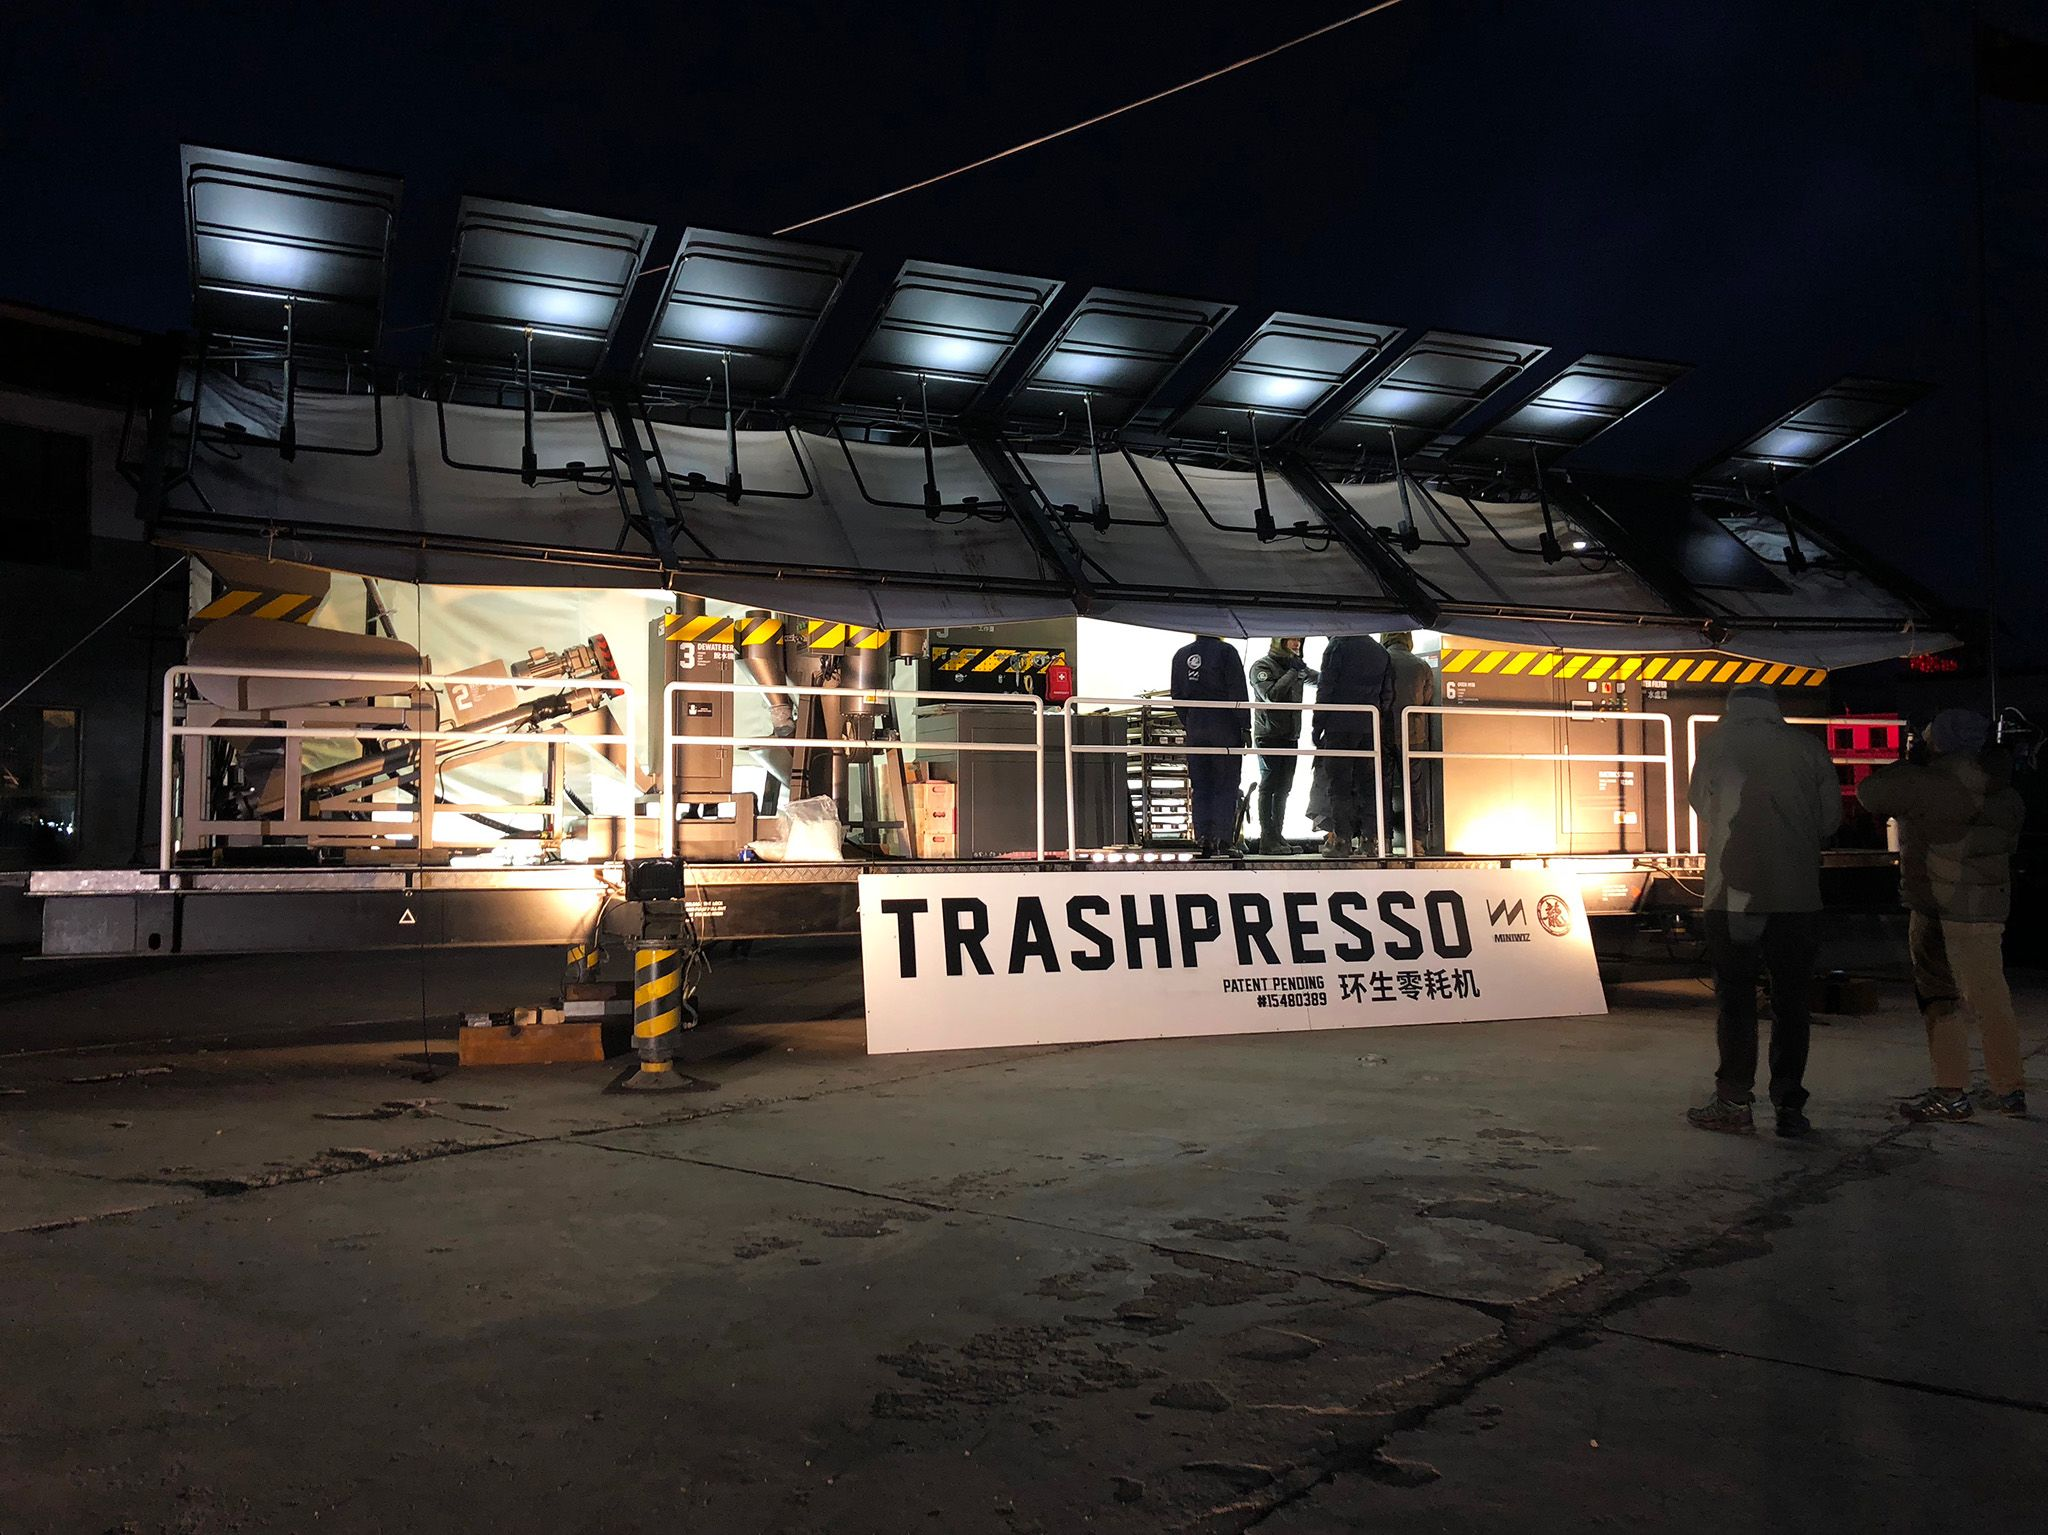 Trashpresso lit up at night, waiting for the tiles to cook. This image is from Jackie Chan's... [Foto del giorno - settembre 2018]